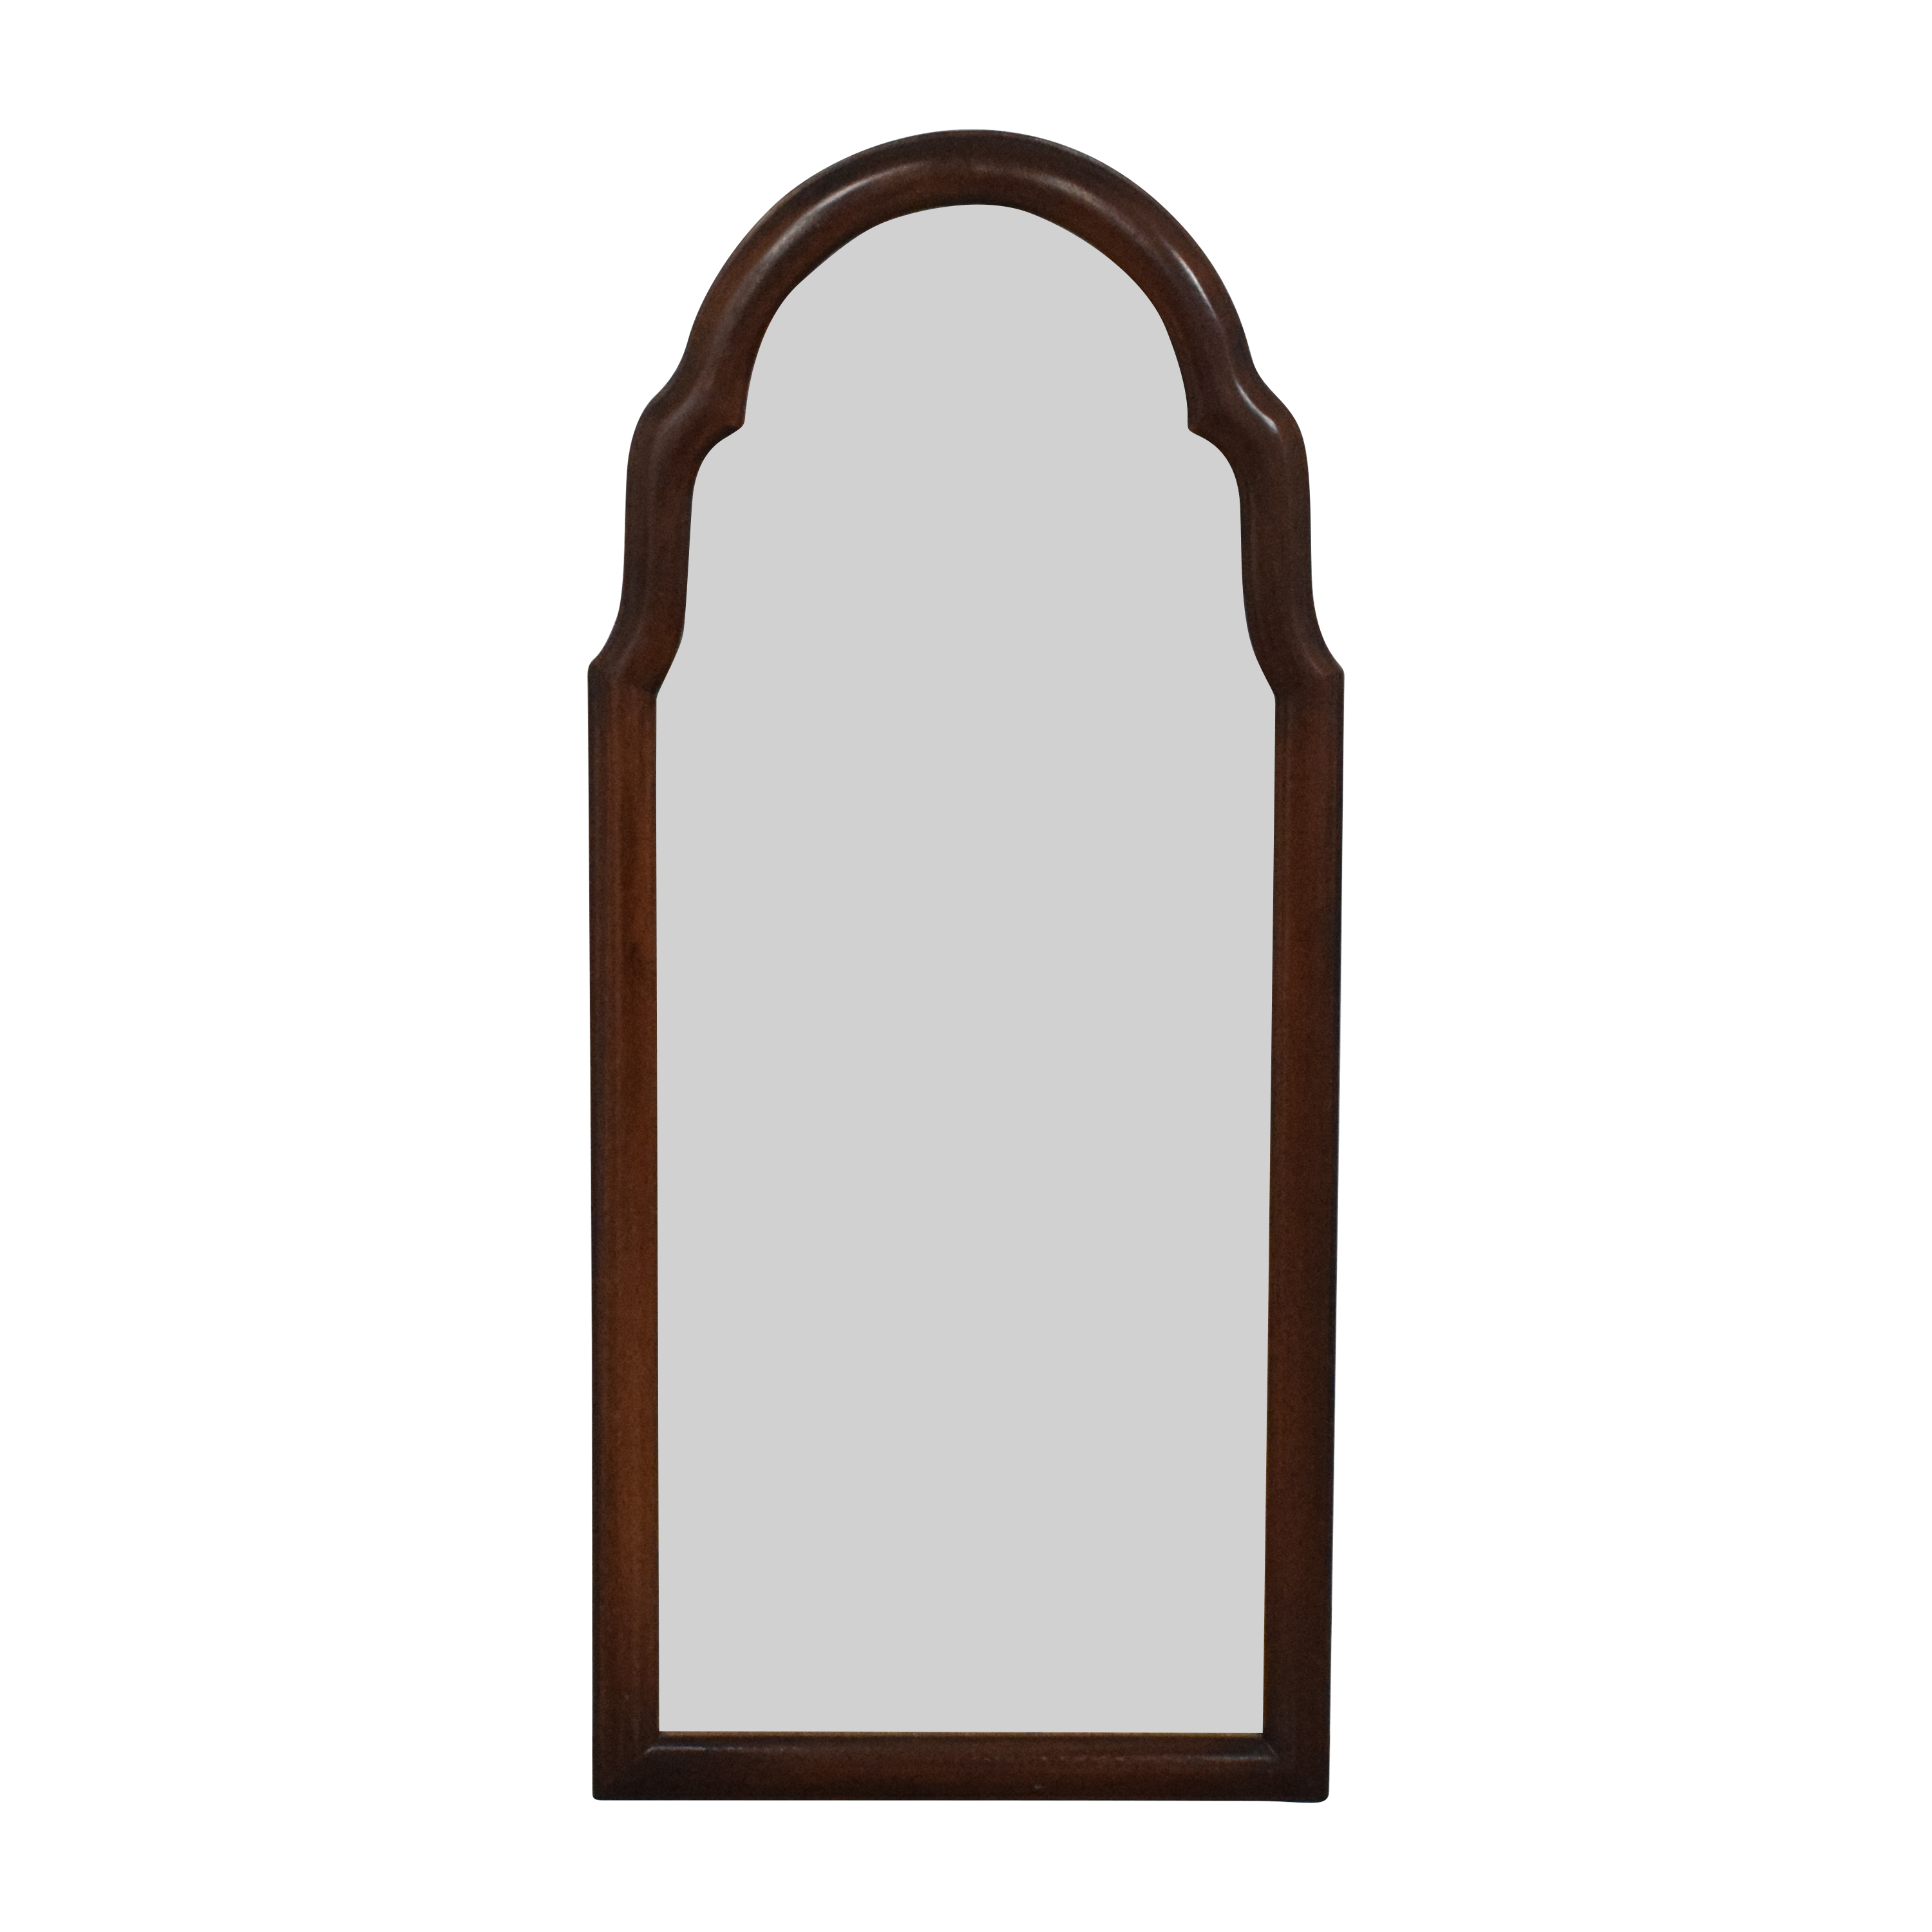 Hickory Chair Framed Mirror / Mirrors